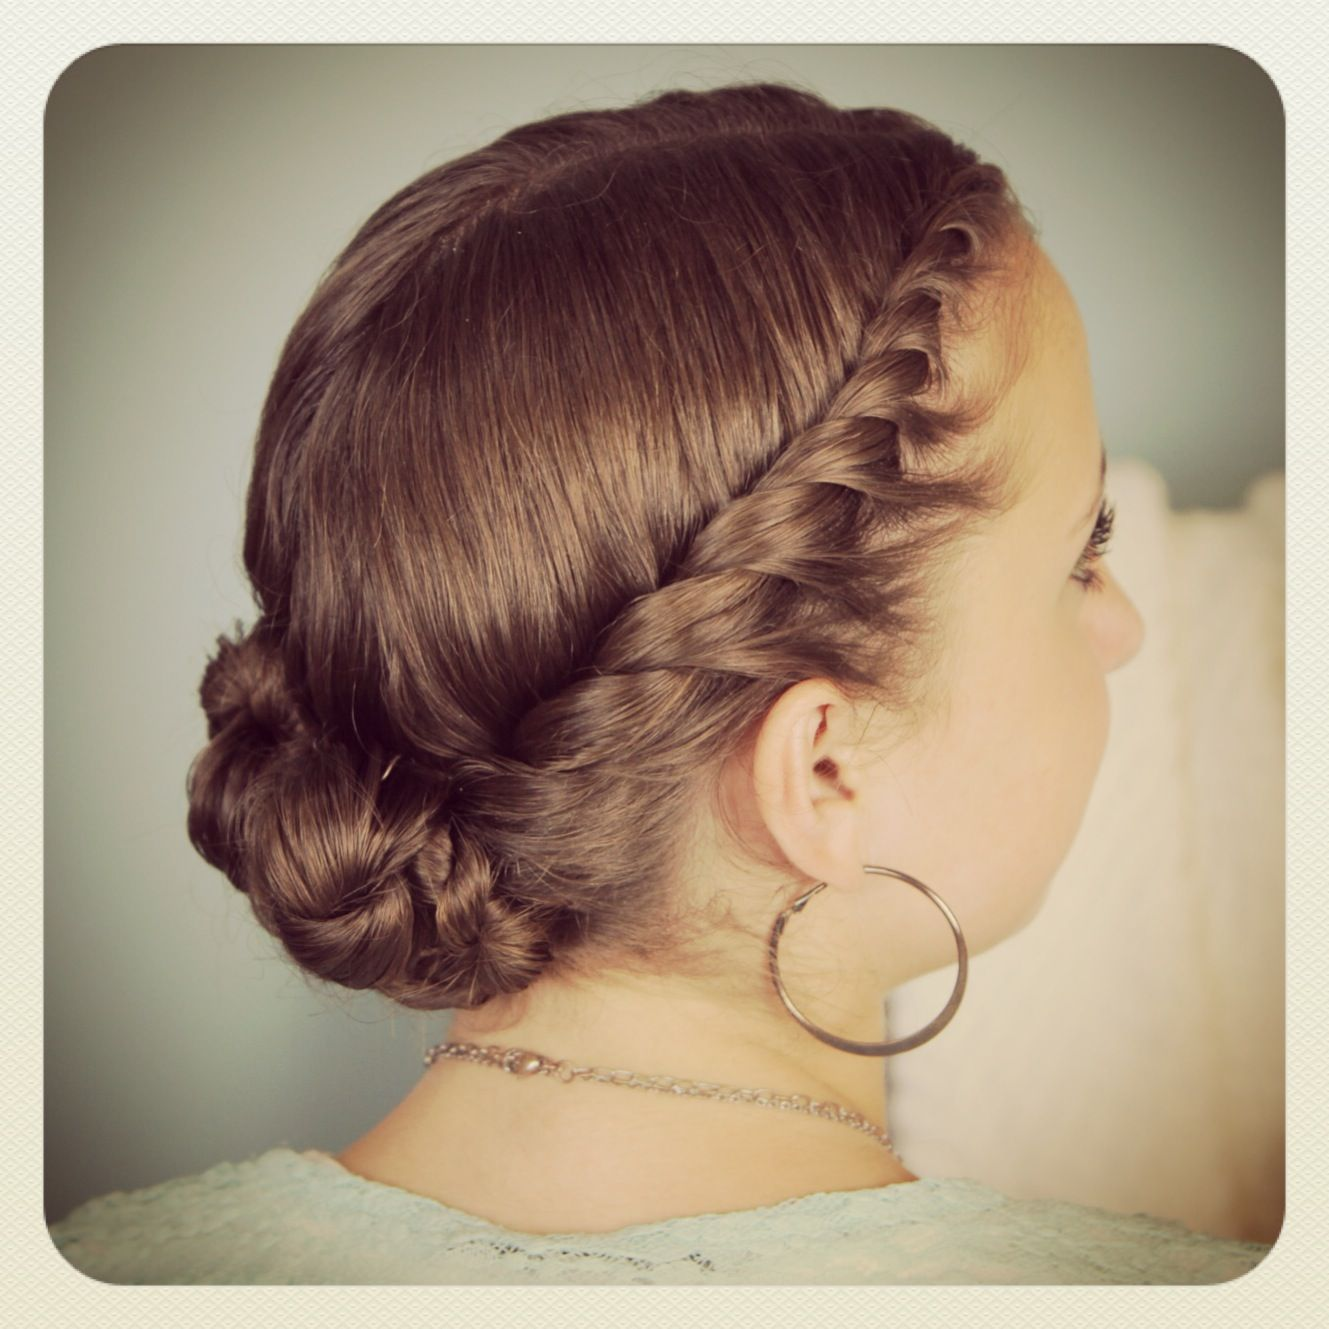 Doubletwist bun updo hairstyles and more hairstyles from